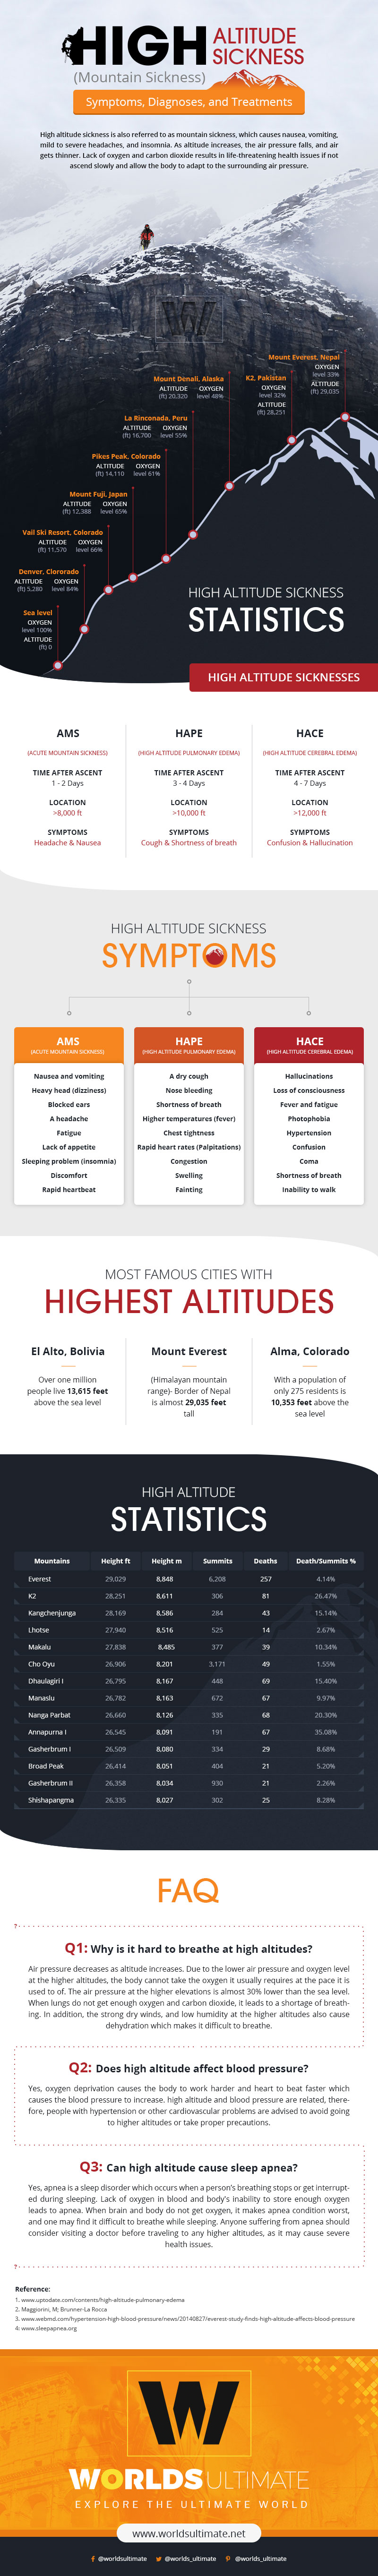 High Altitude Sickness (Mountain Sickness) [Infographic]